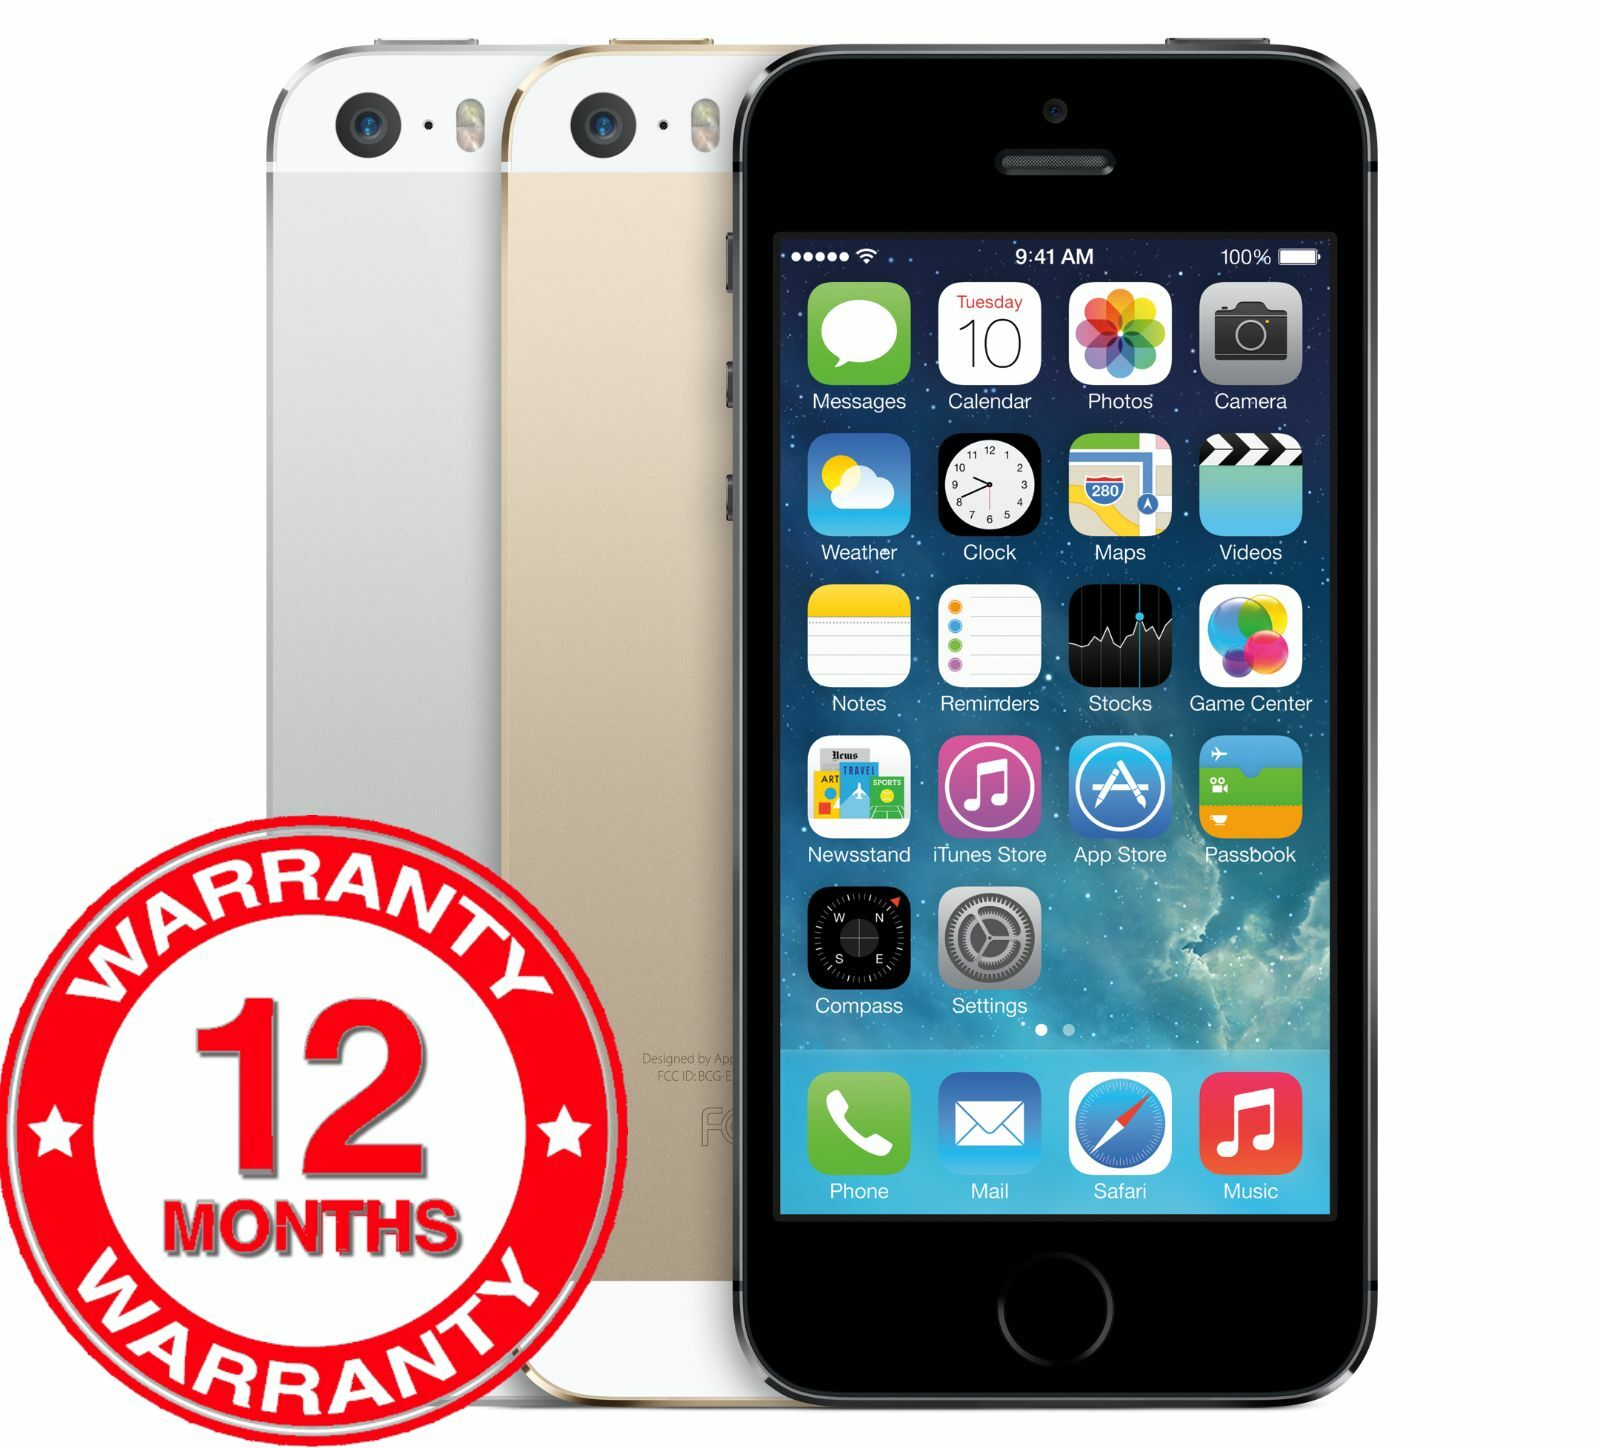 SELLER REFURBISHED APPLE IPHONE 5S 16GB/32GB/64GB - UNLOCKED SIM FREE SMARTPHONE - GOLD/SILVER/GREY